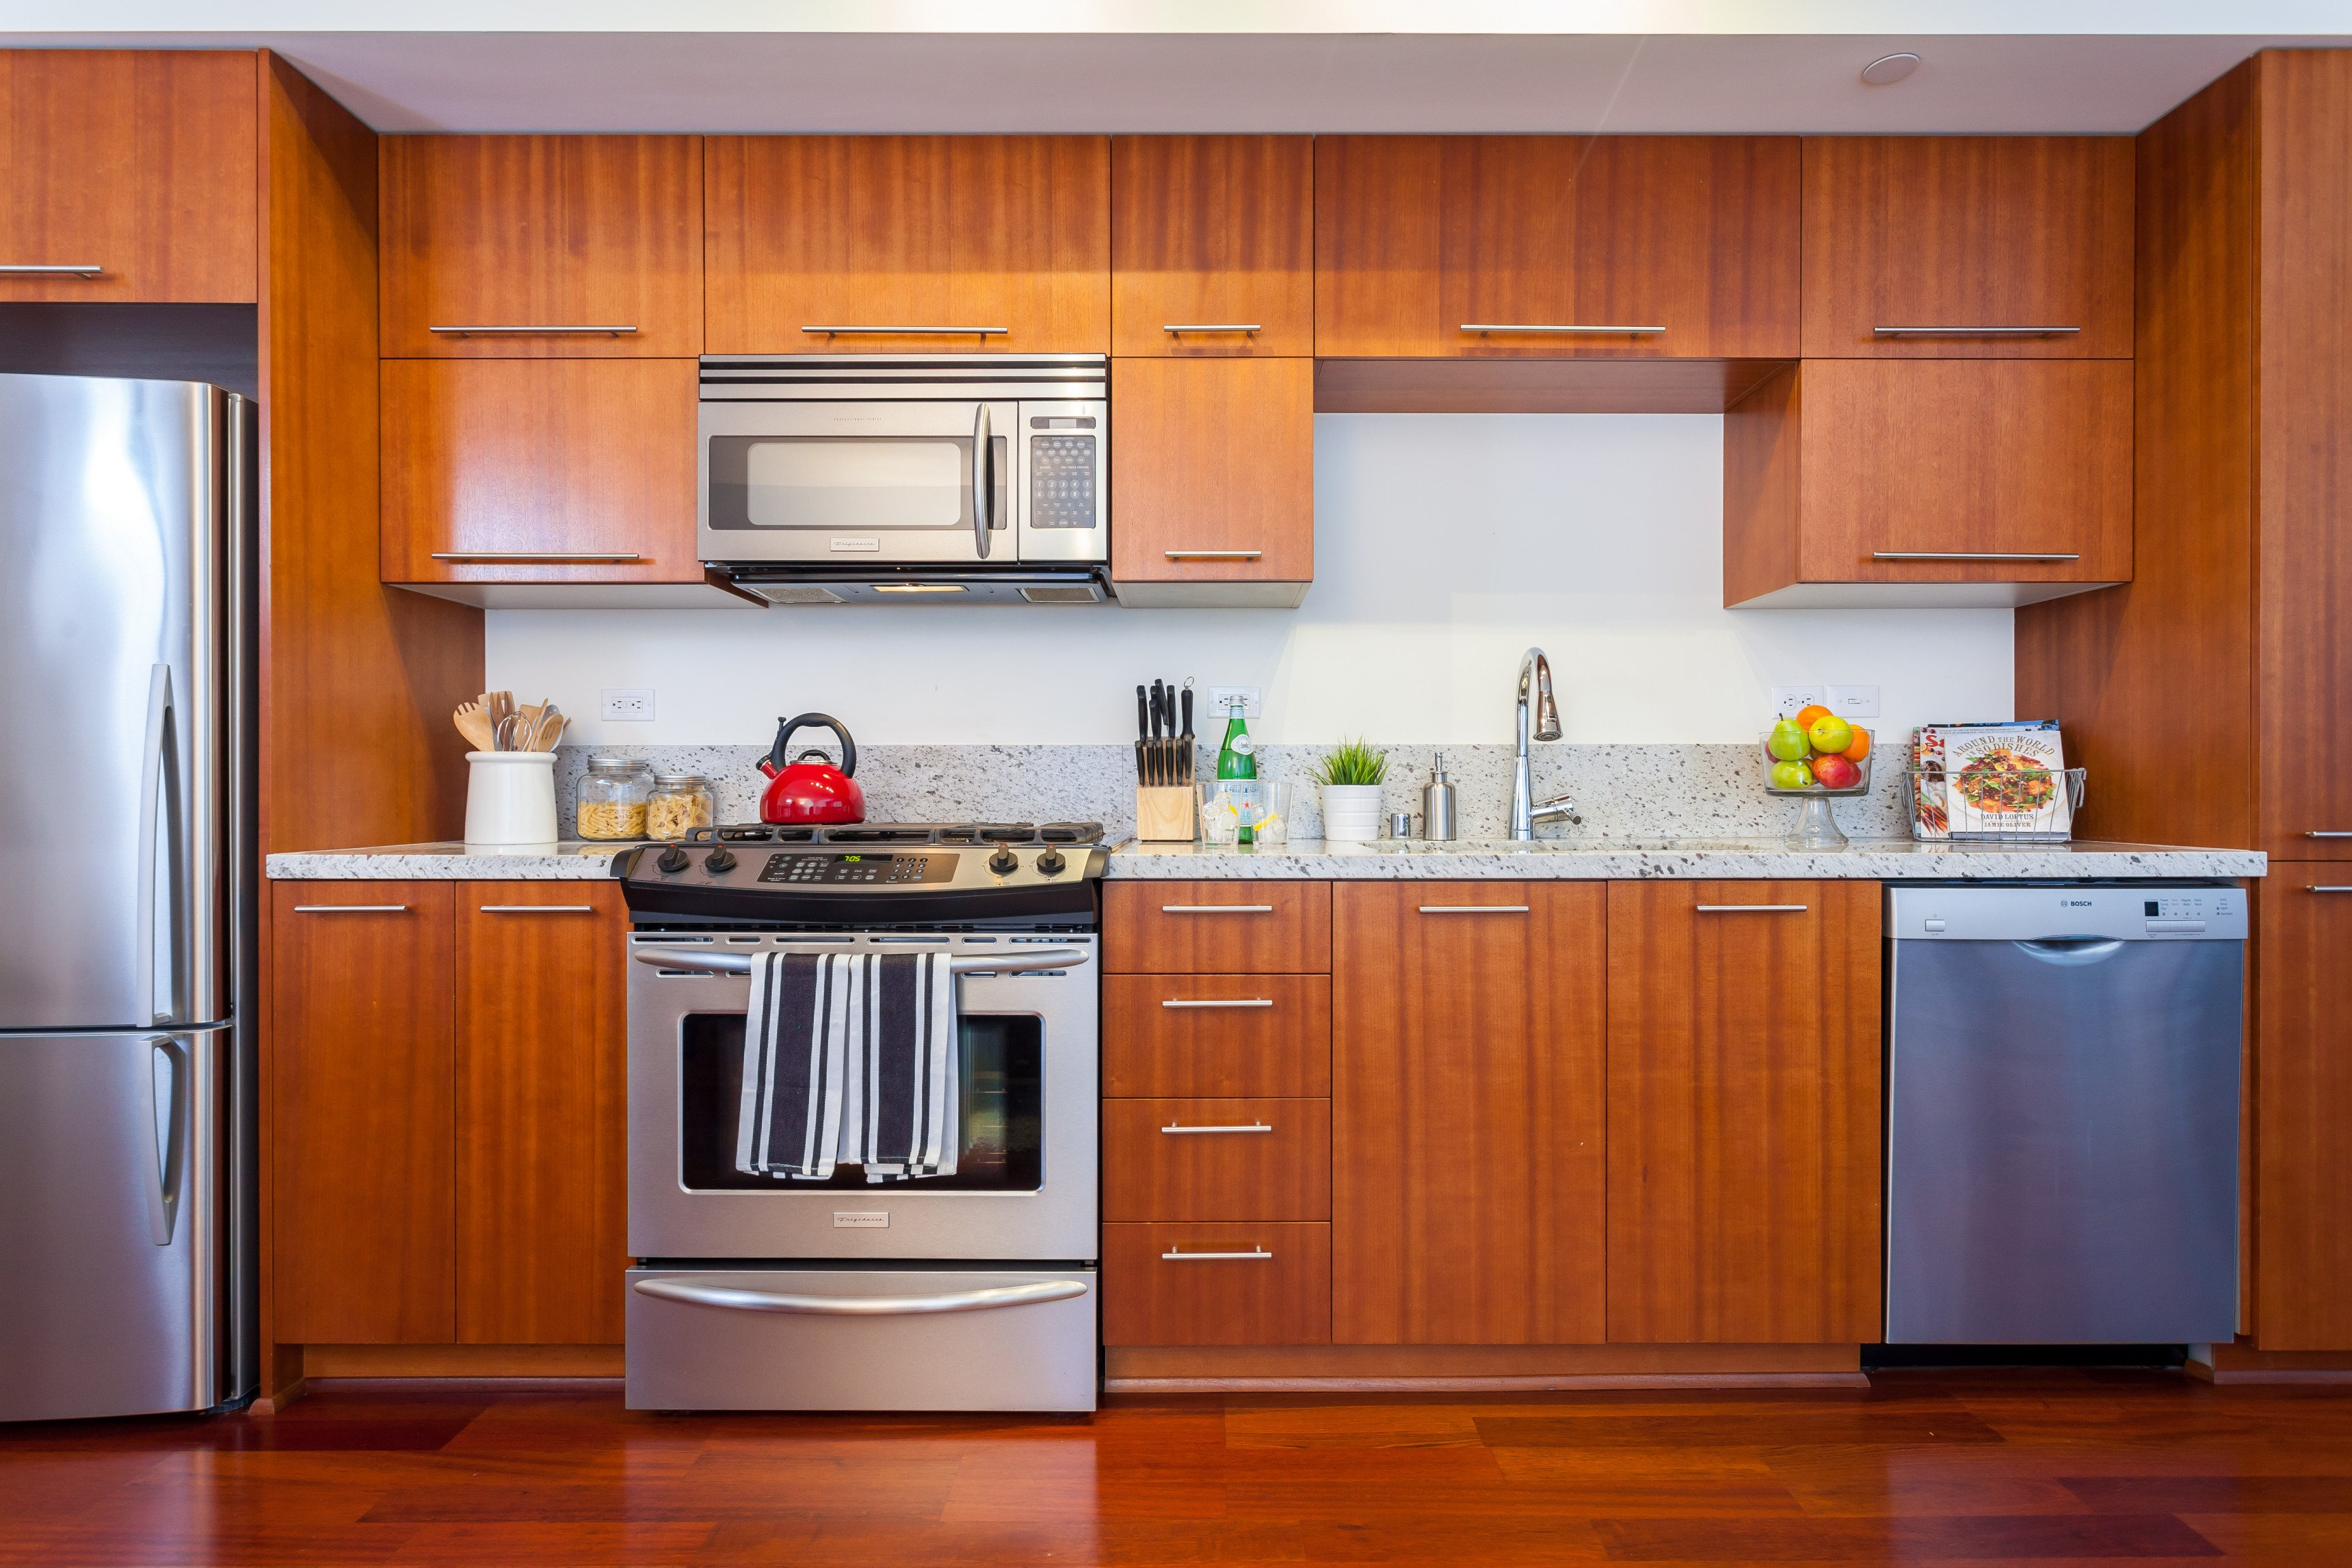 Gallery belltown luxury studio condo with space needle - Seattle kitchen appliances ...